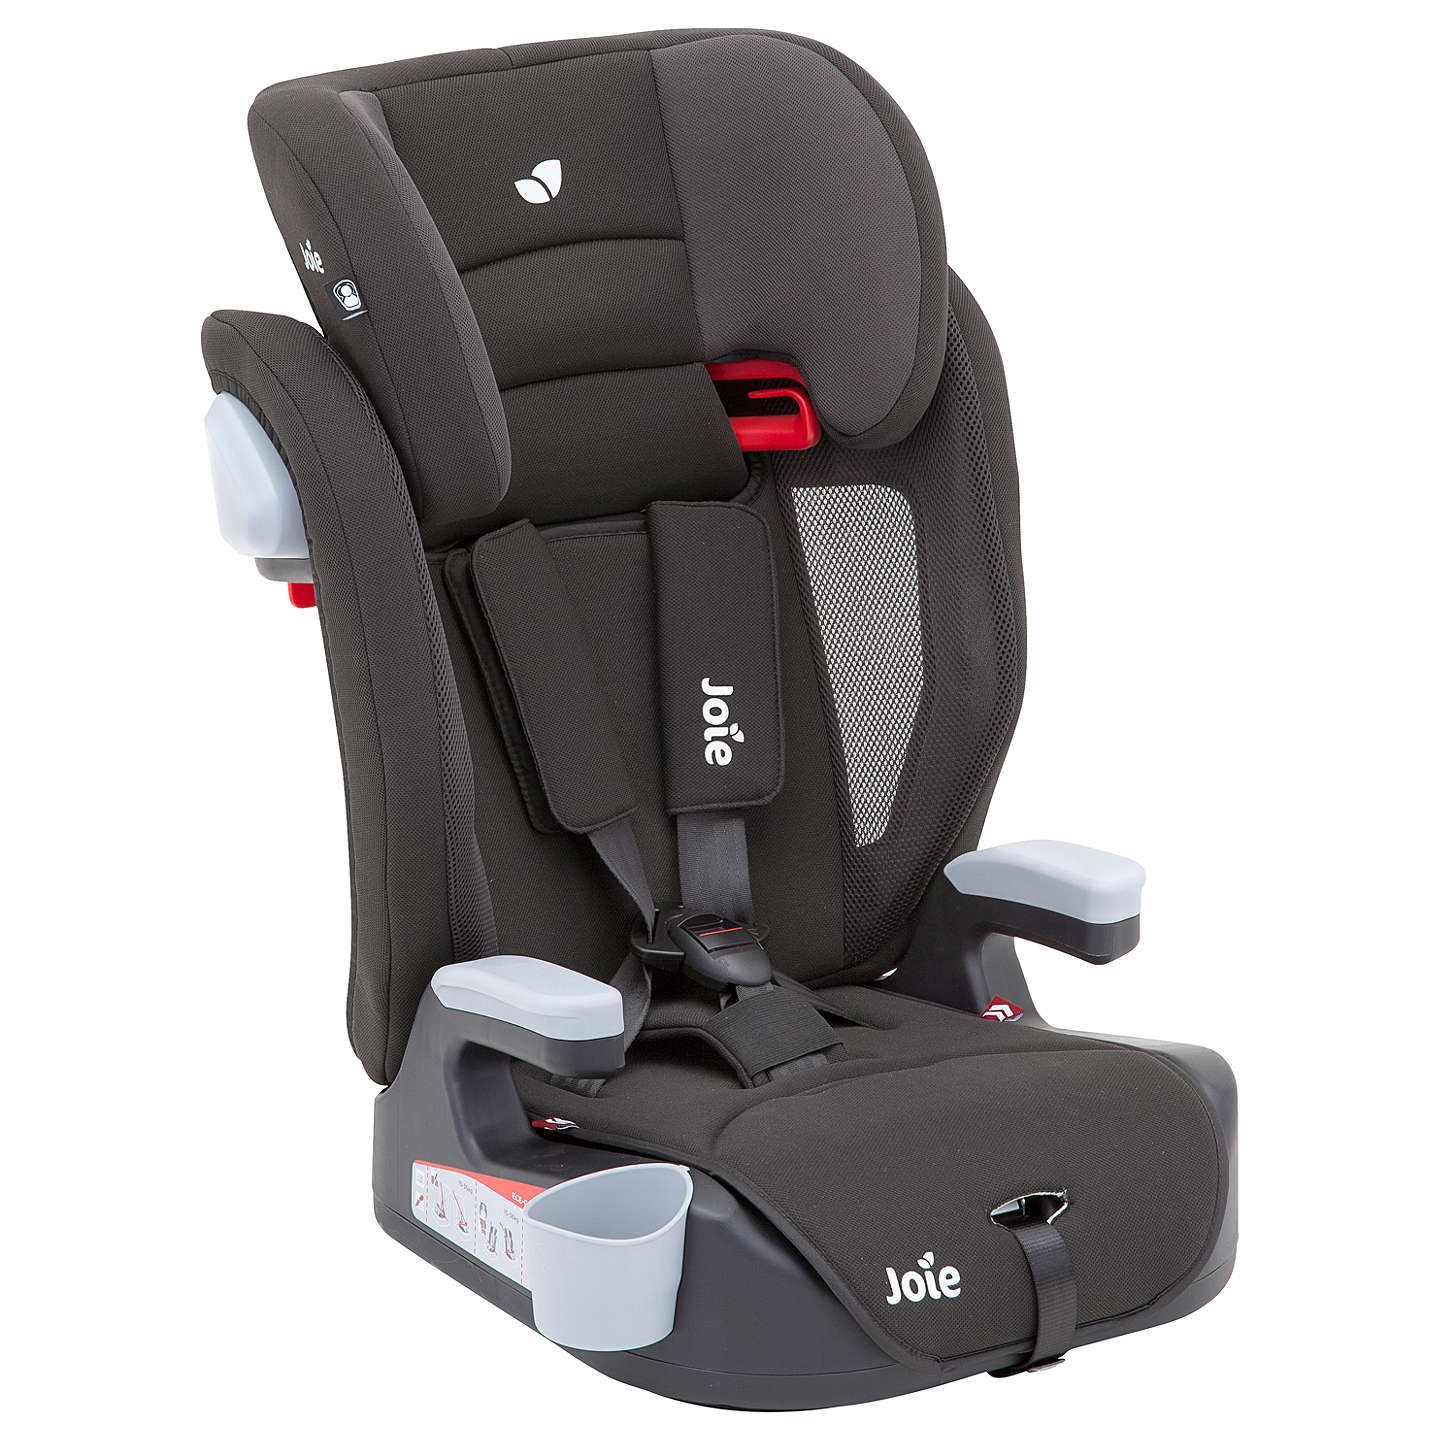 Joie Elevate Group 1/2/3 Car Seat, Two Tone Black at John Lewis